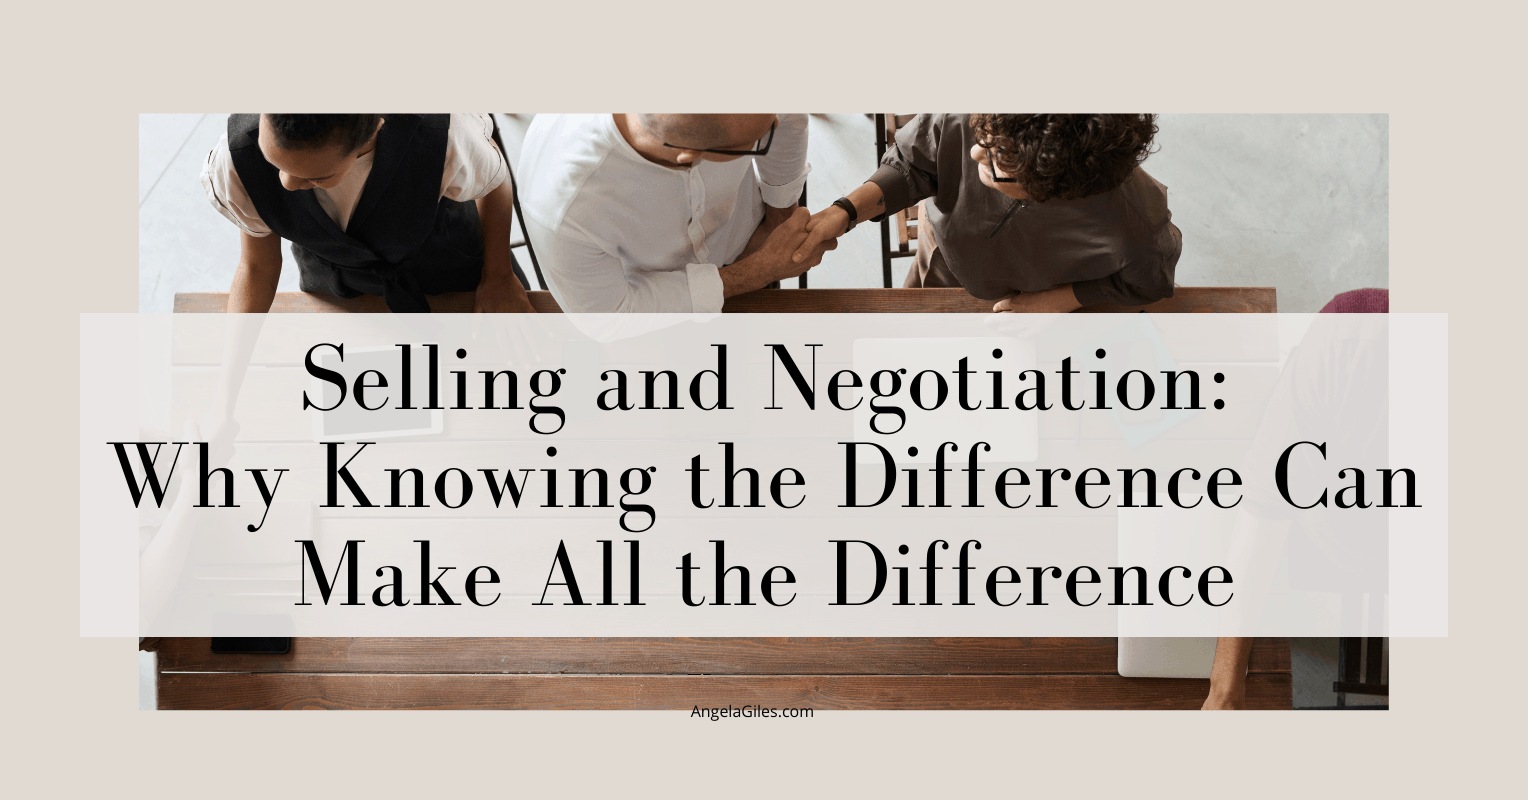 Selling and negotiation: why knowing the difference can make all the difference